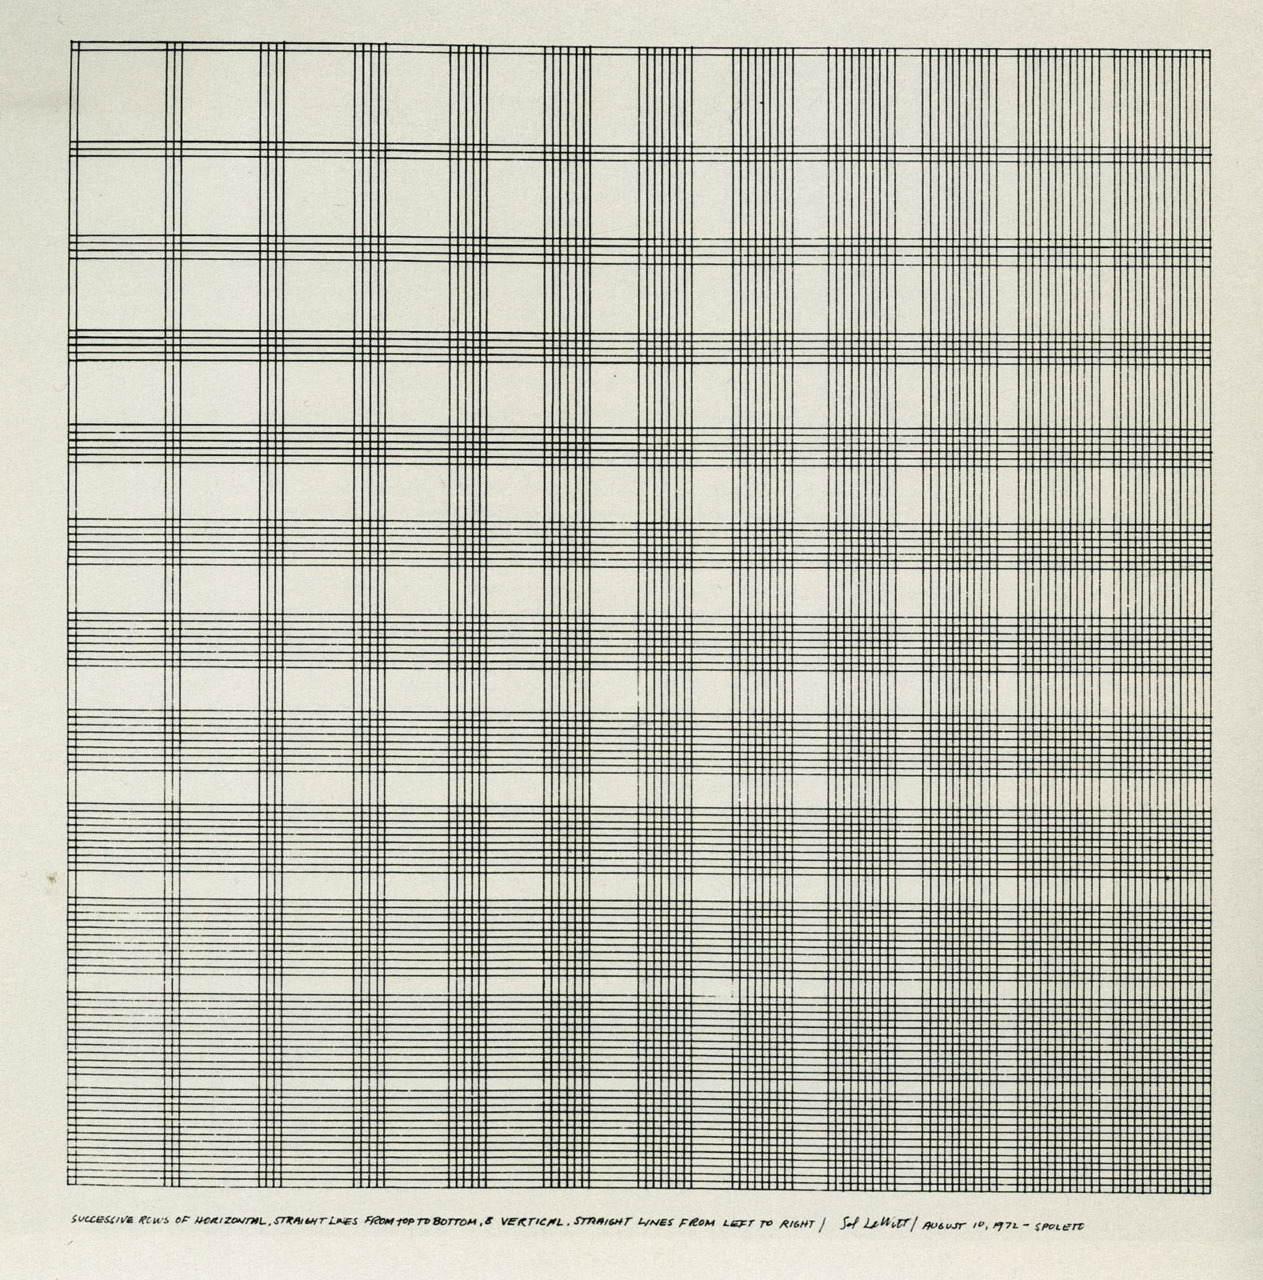 Sol Lewitt, The FieldWorker, 1975